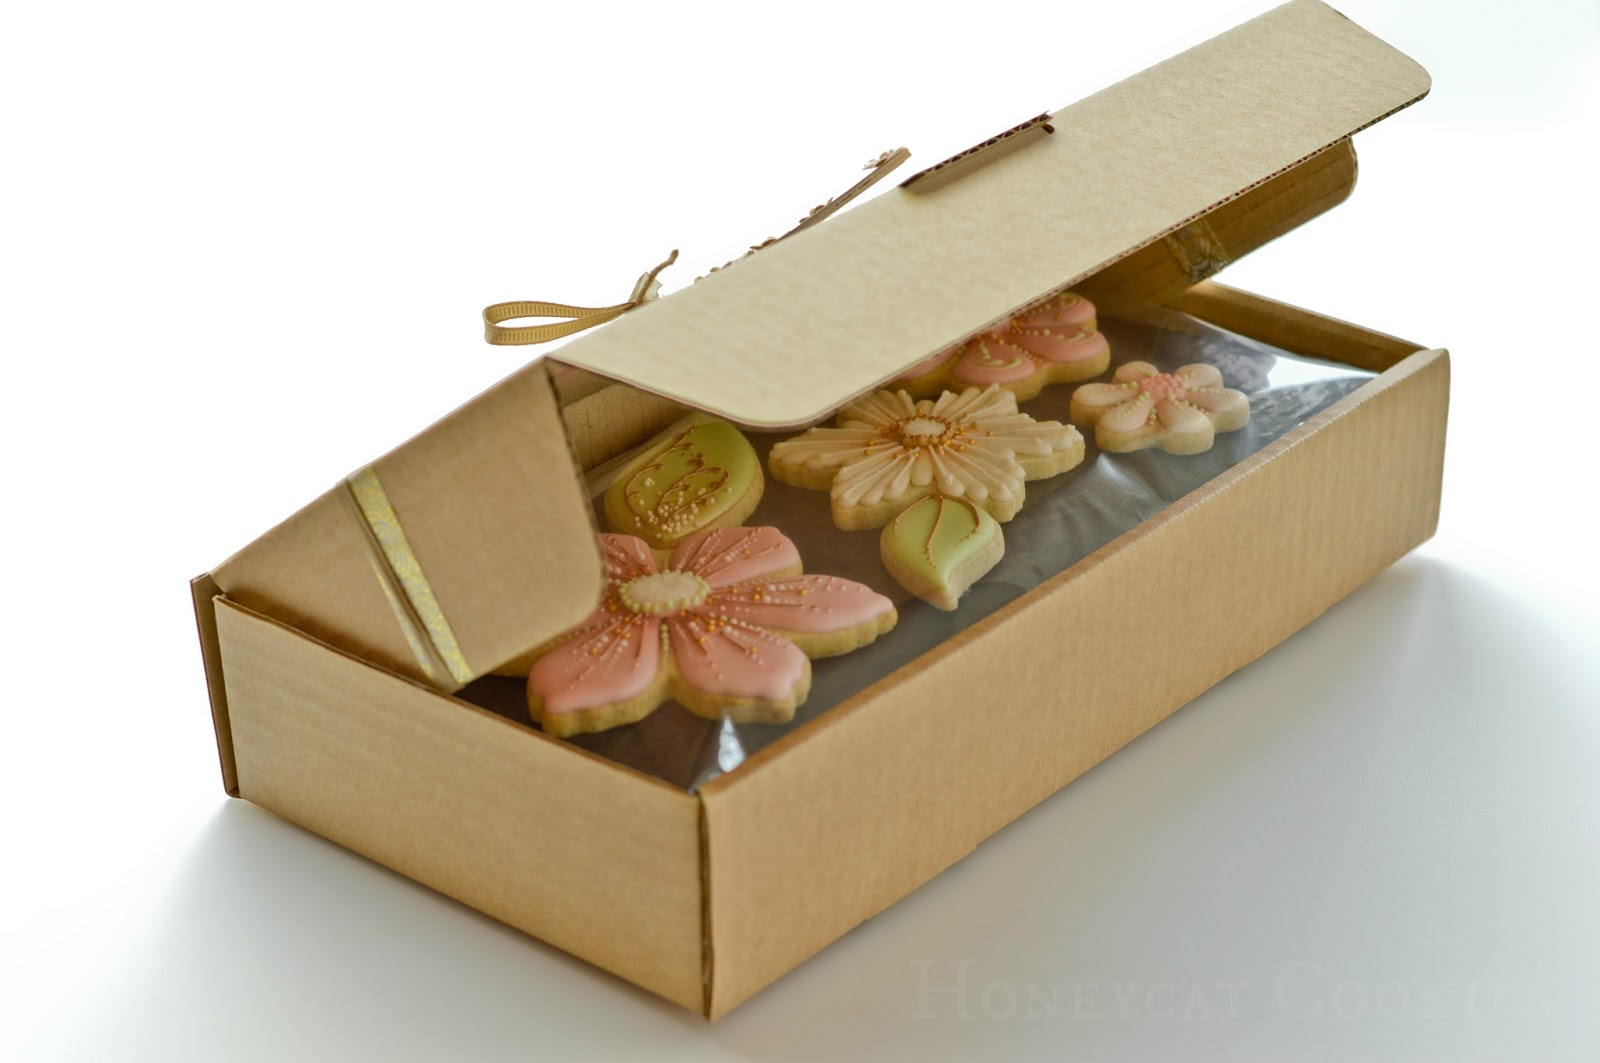 Partly open gift box showing sealed top layer of decorated cookies on cushion padding, by Honeycat Cookies.